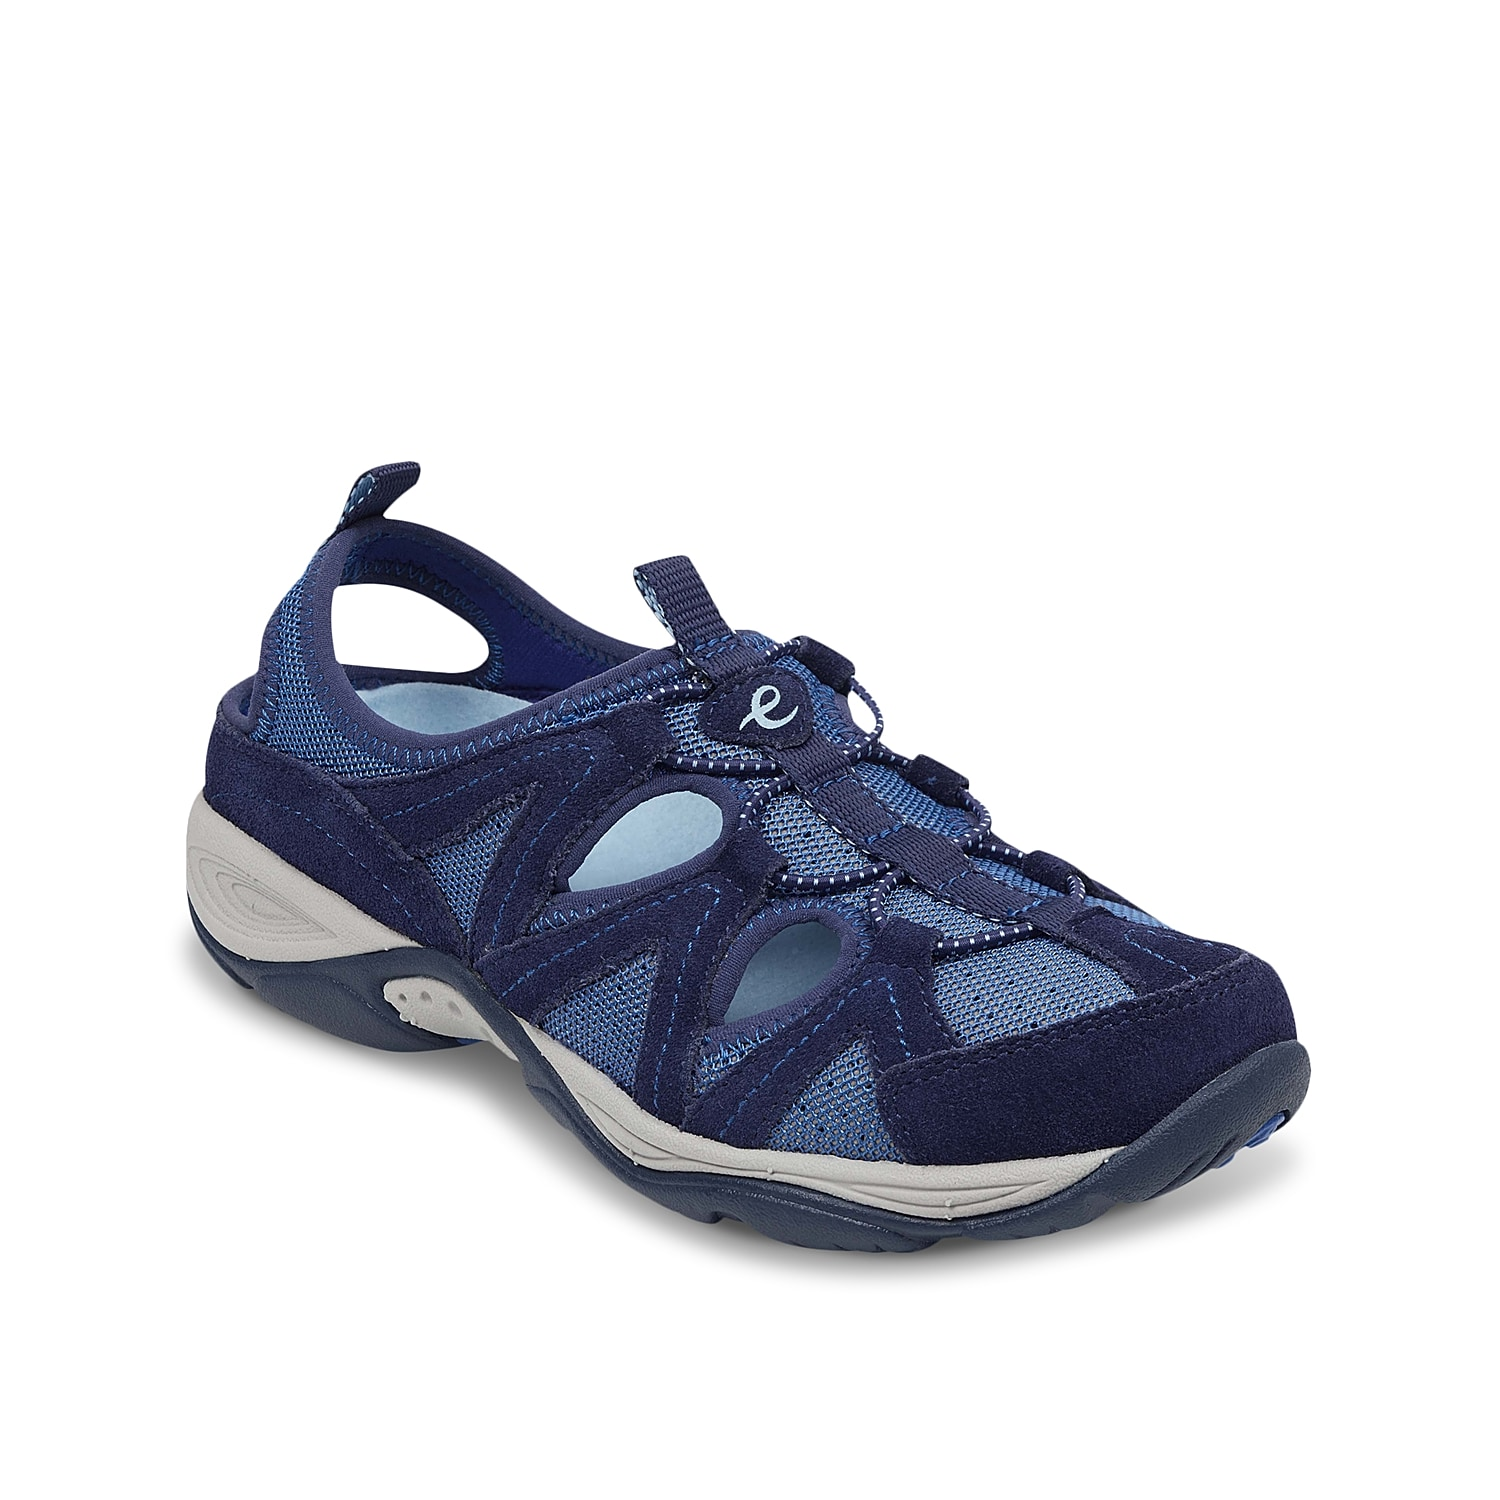 The Earthen sneaker from Easy Spirit will be a sporty alternative to your sneaker collection. These slingbacks feature breathable cutouts for daylong comfort and is backed by a removable contoured footbed for extra arch support.